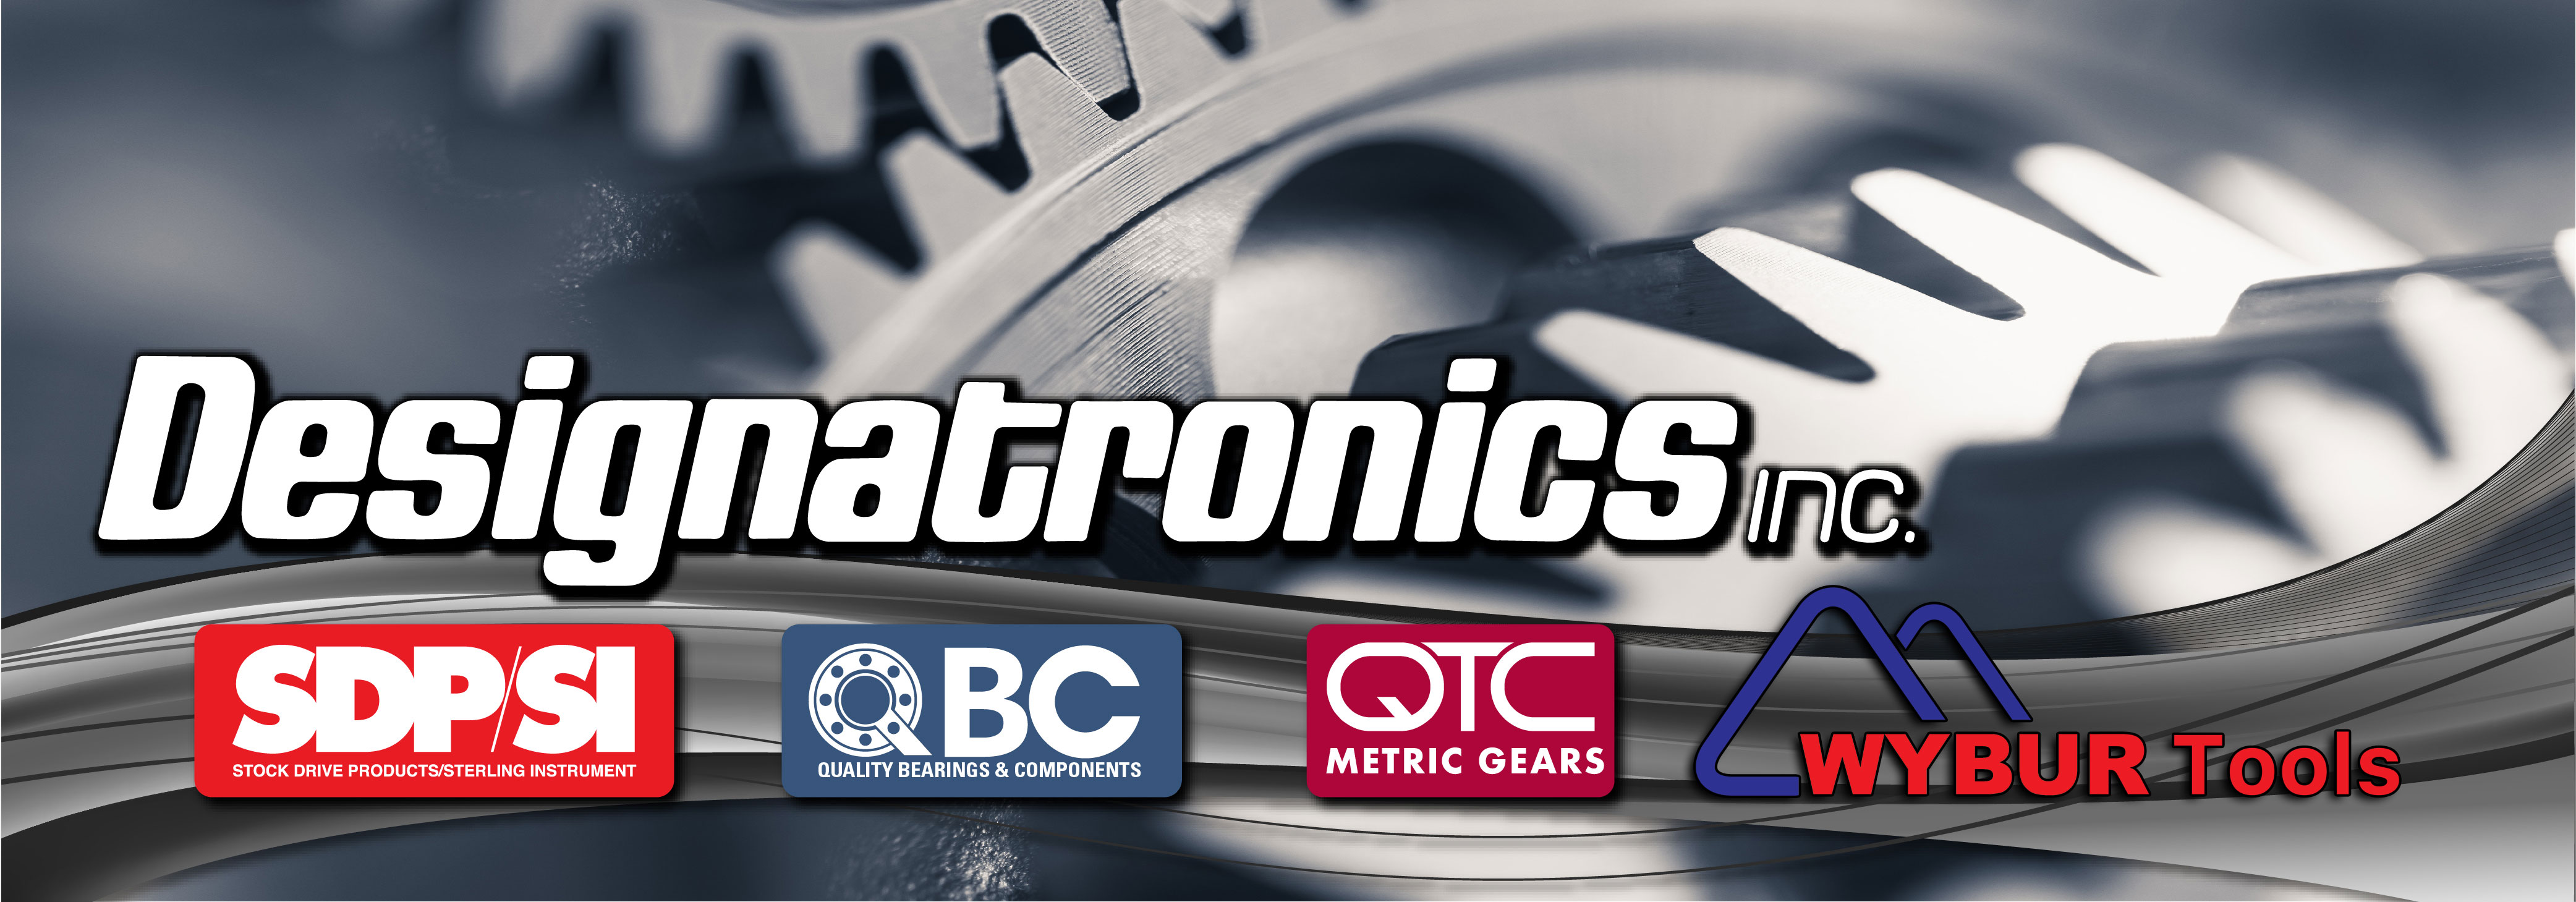 Designatronics and it's brands celebrates 70 years of excellence